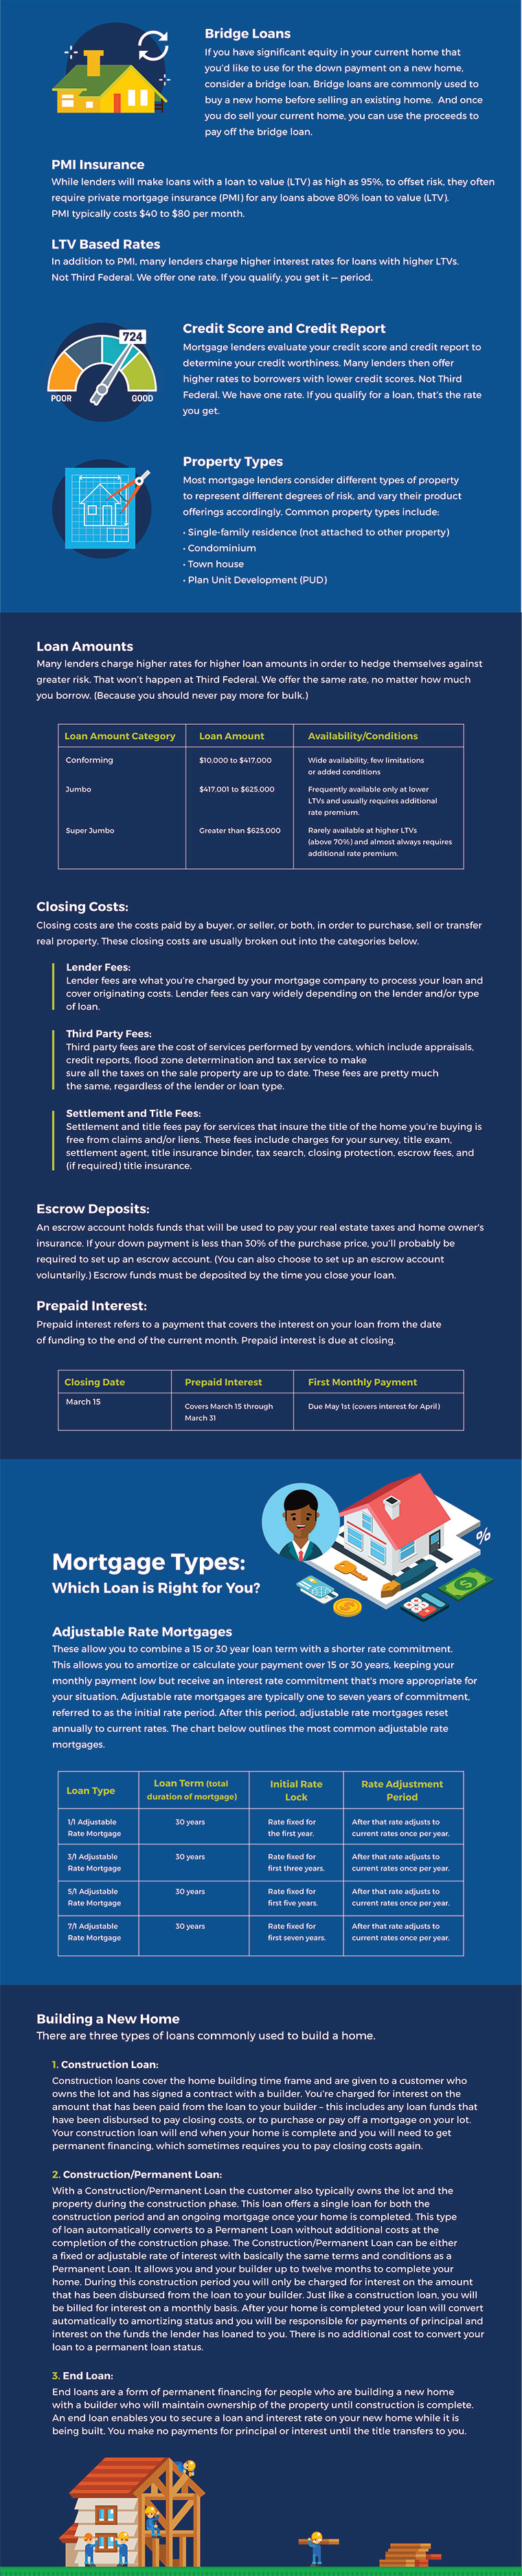 mortgage-purchase-guide-2